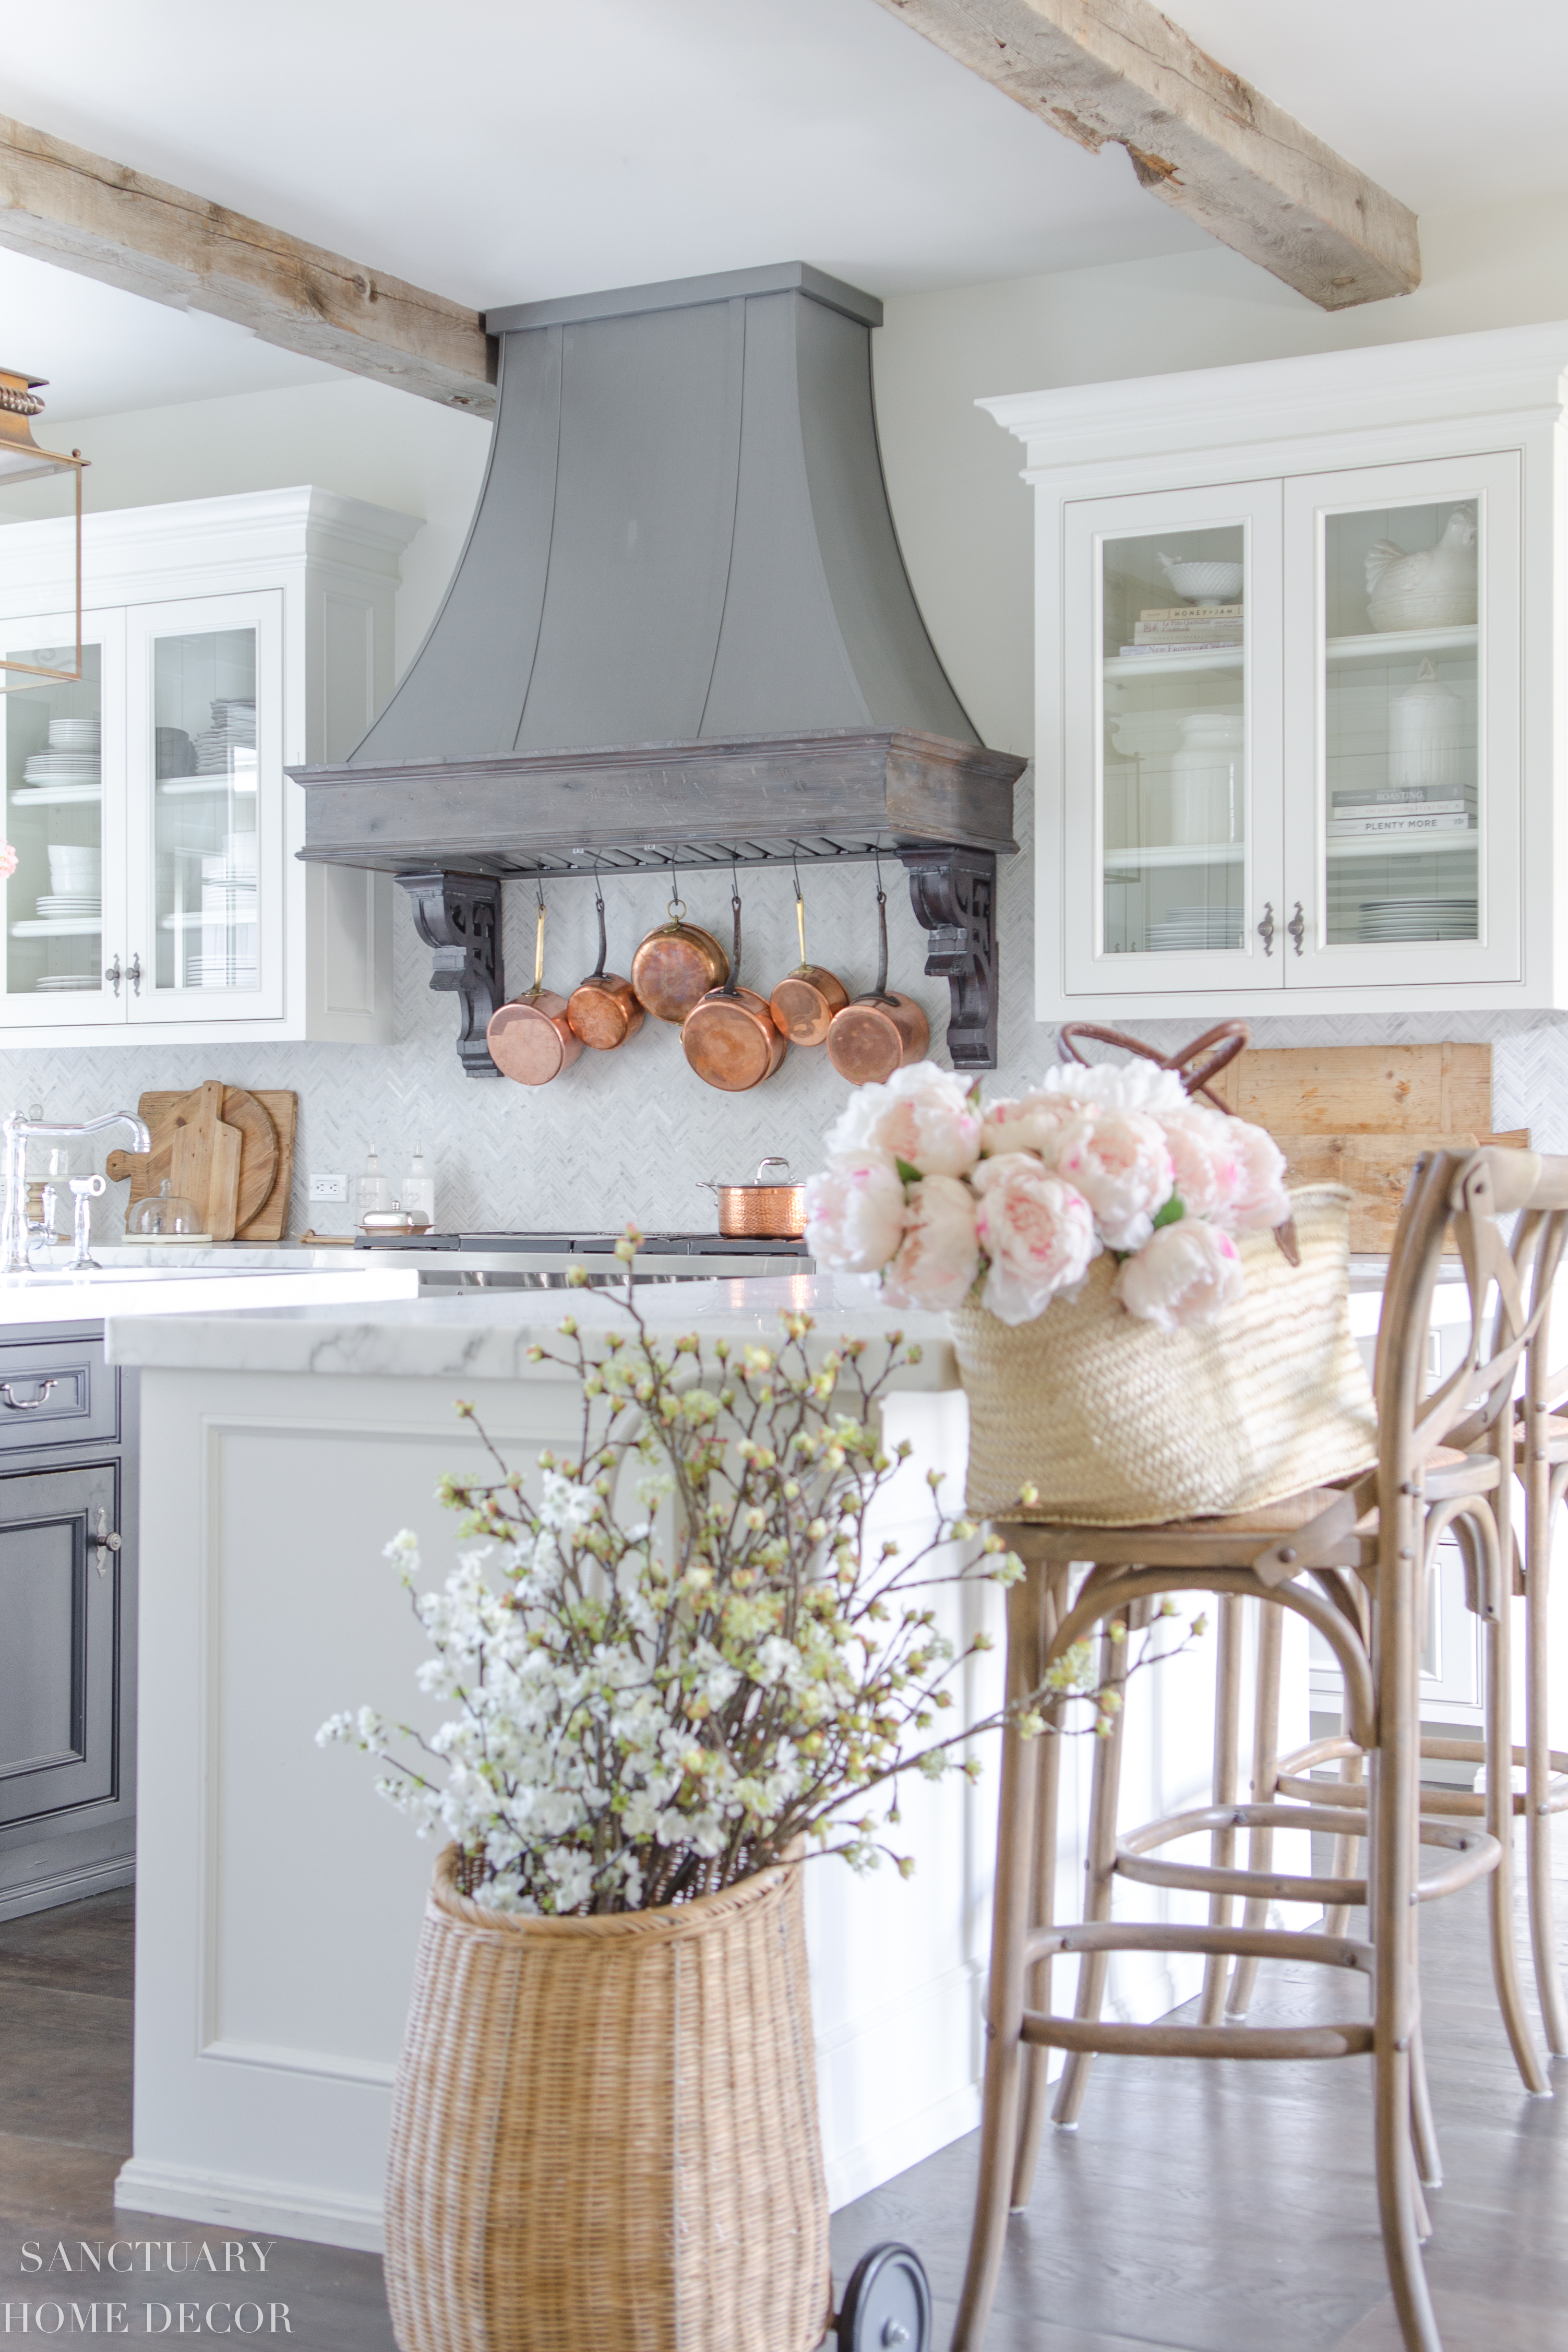 In Home Decorations Spring Home Tour Light And Bright Decorating Sanctuary Home Decor